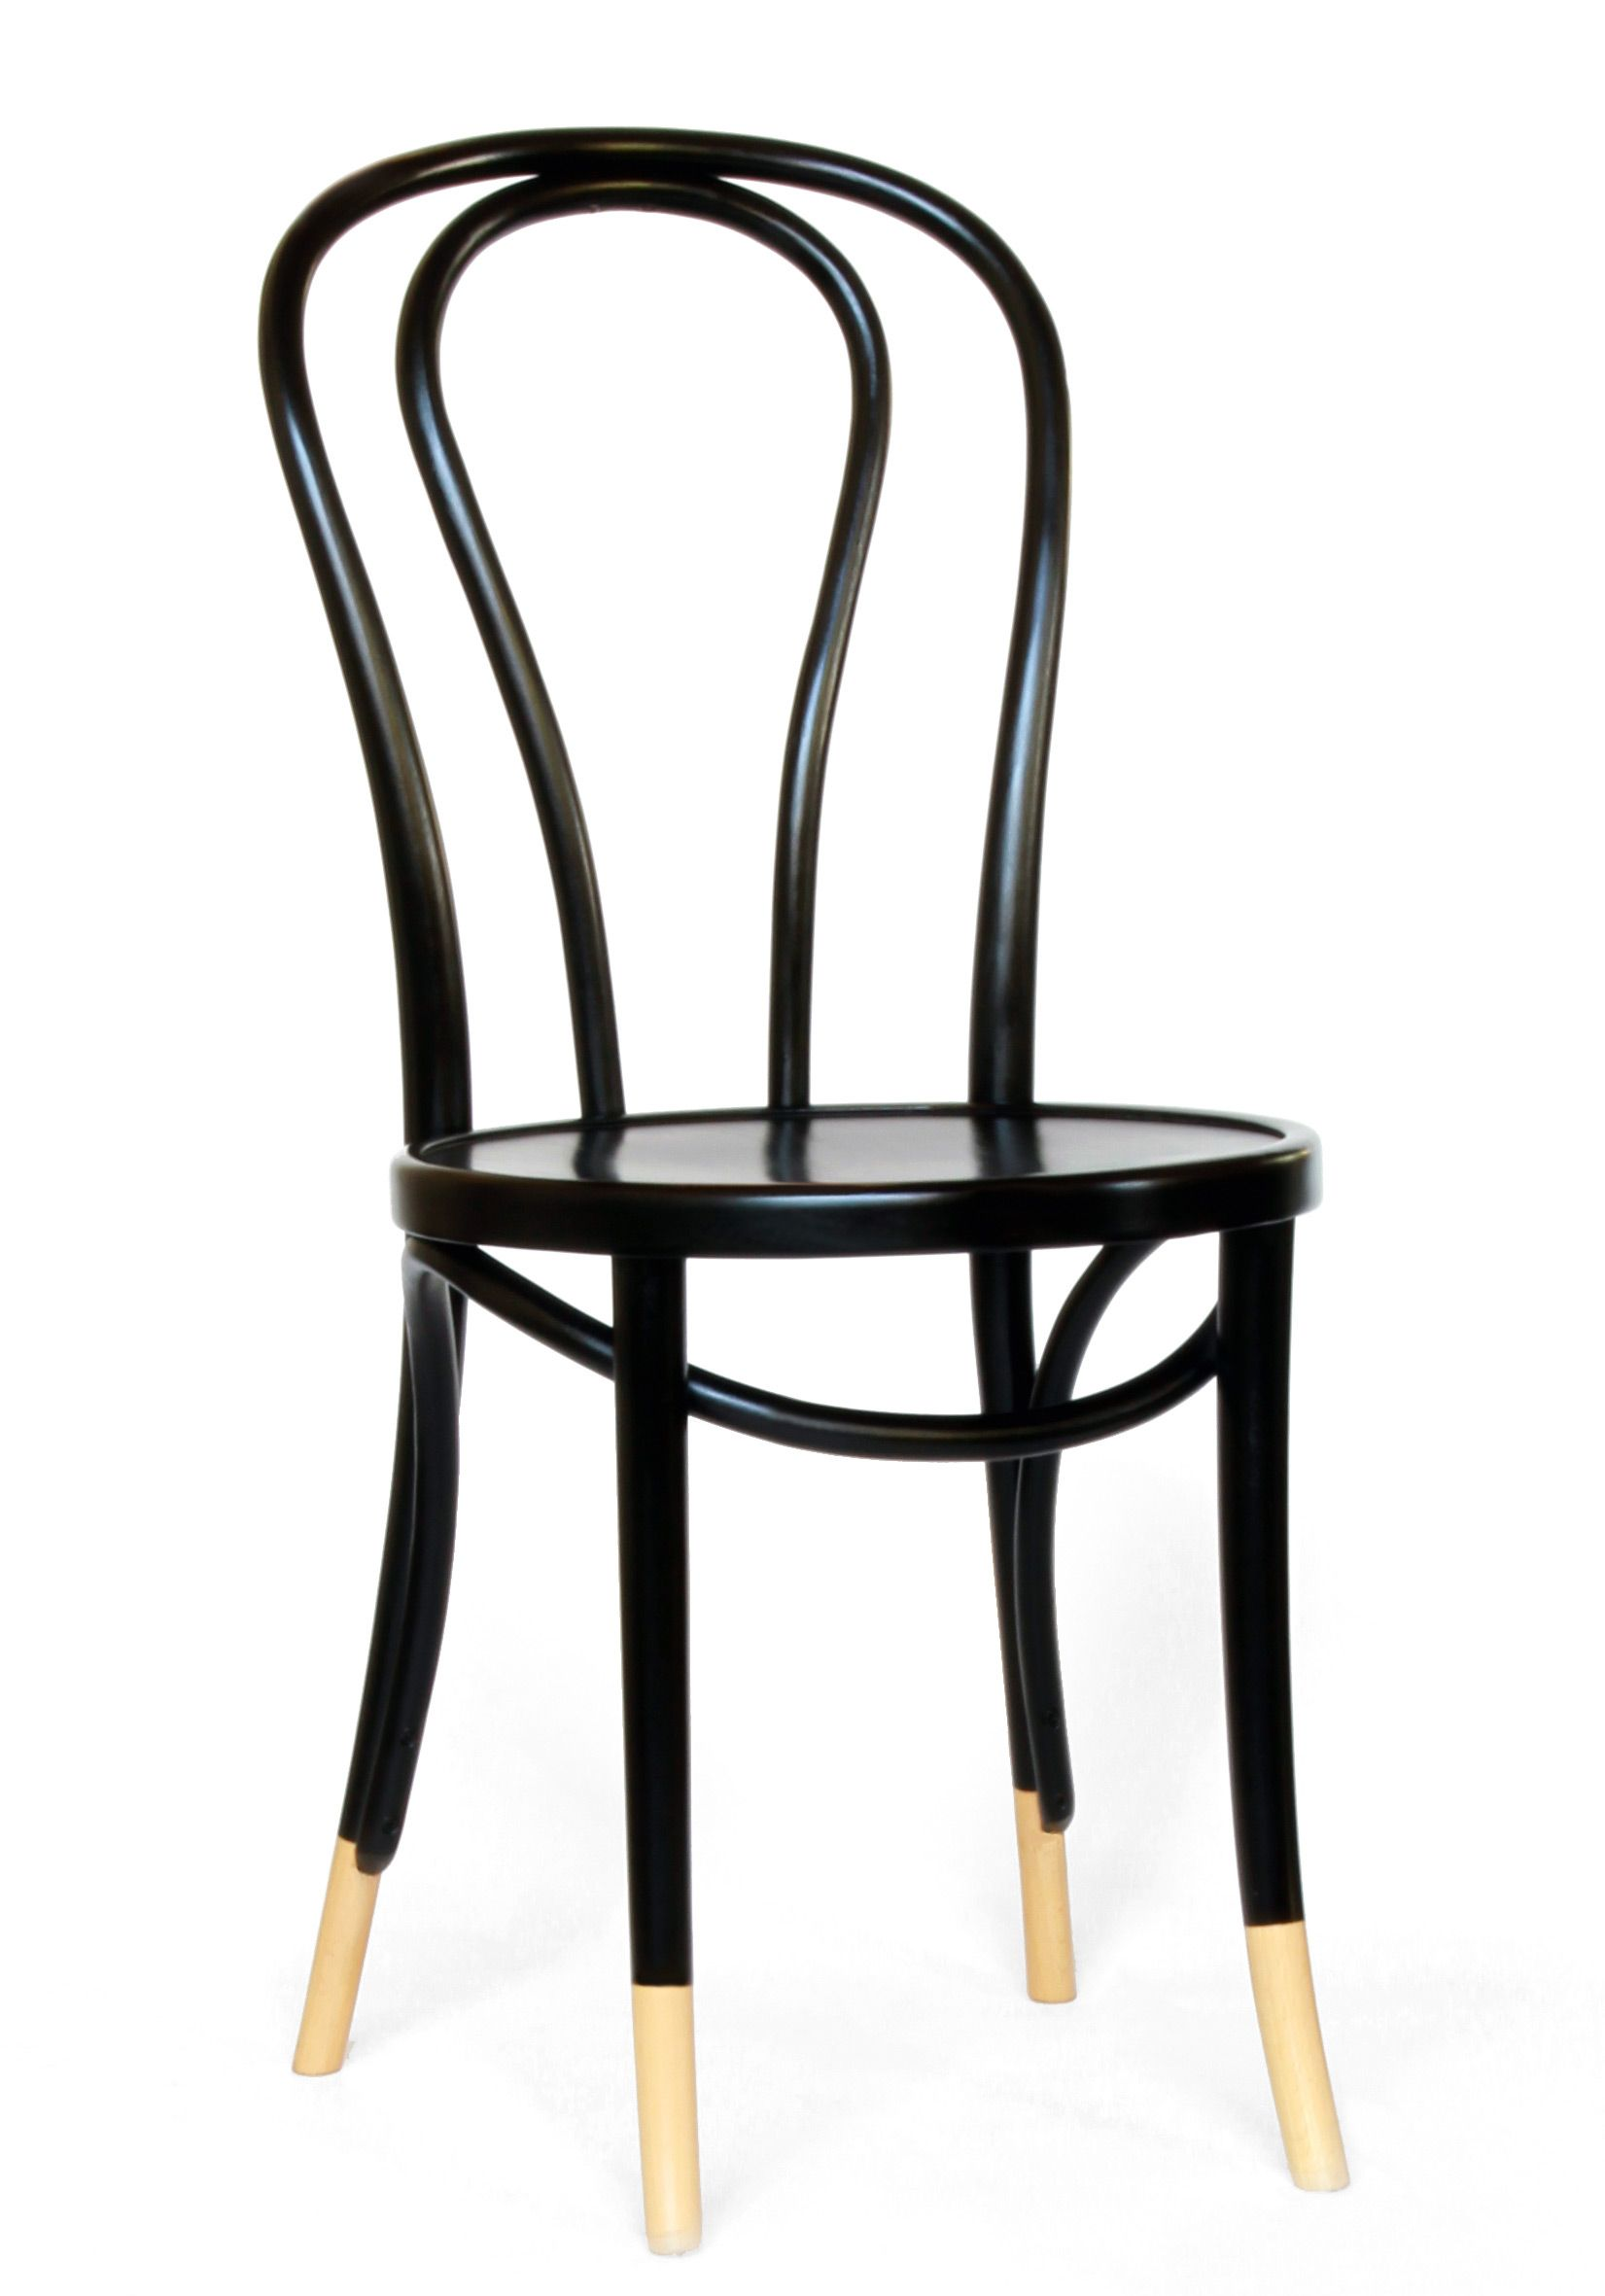 Bentwood Chairs Melbourne Michael Thonet Chair No18 Mobilya Tasarımı Furniture